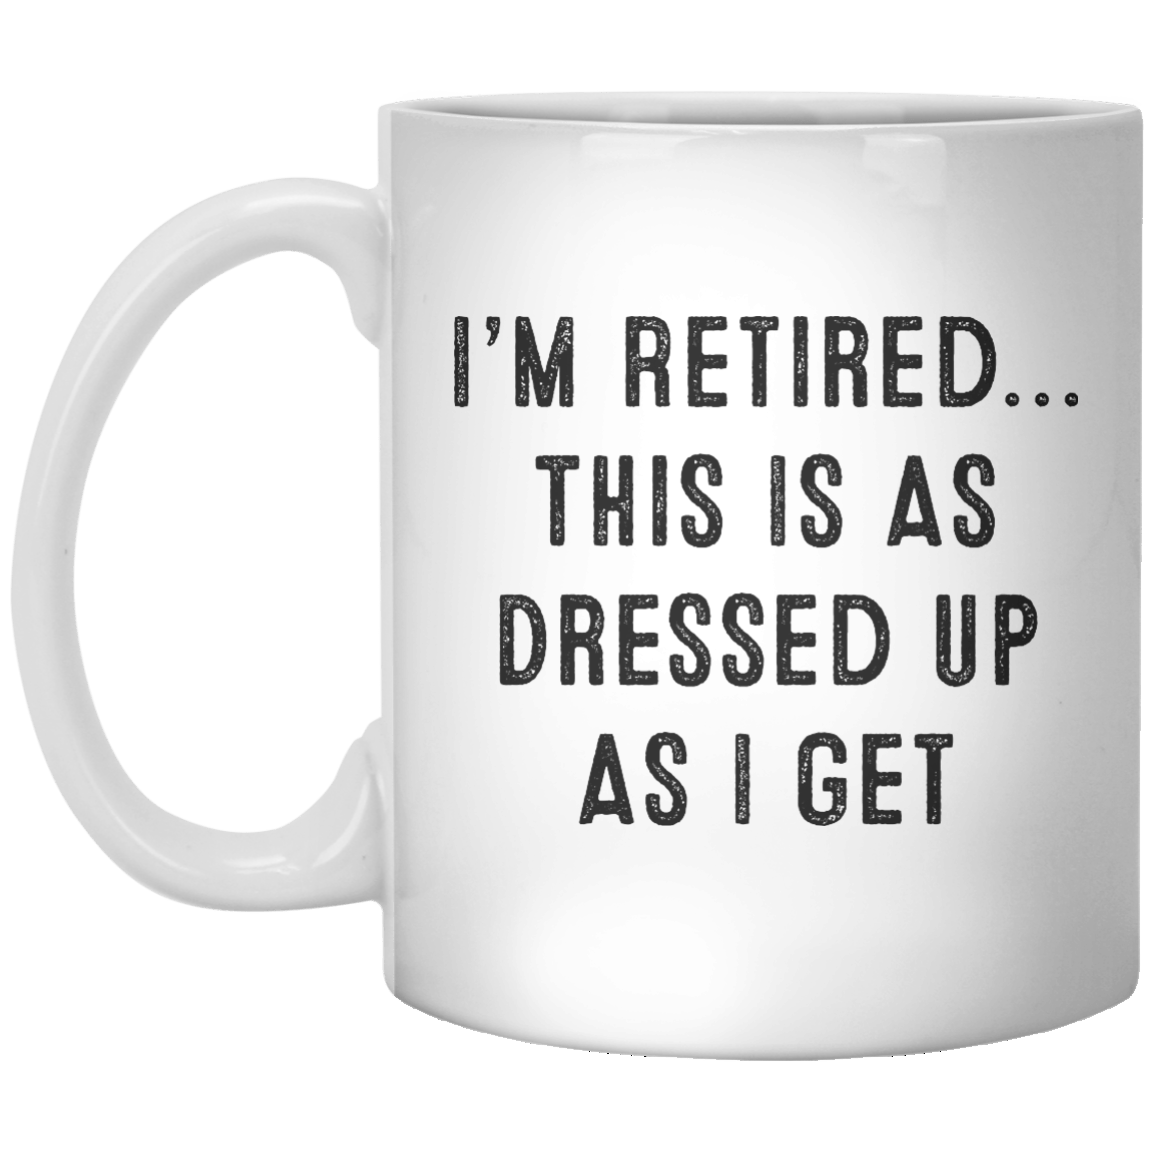 I'm Retired This Is As Dressed up As I get MUG - Shirtoopia